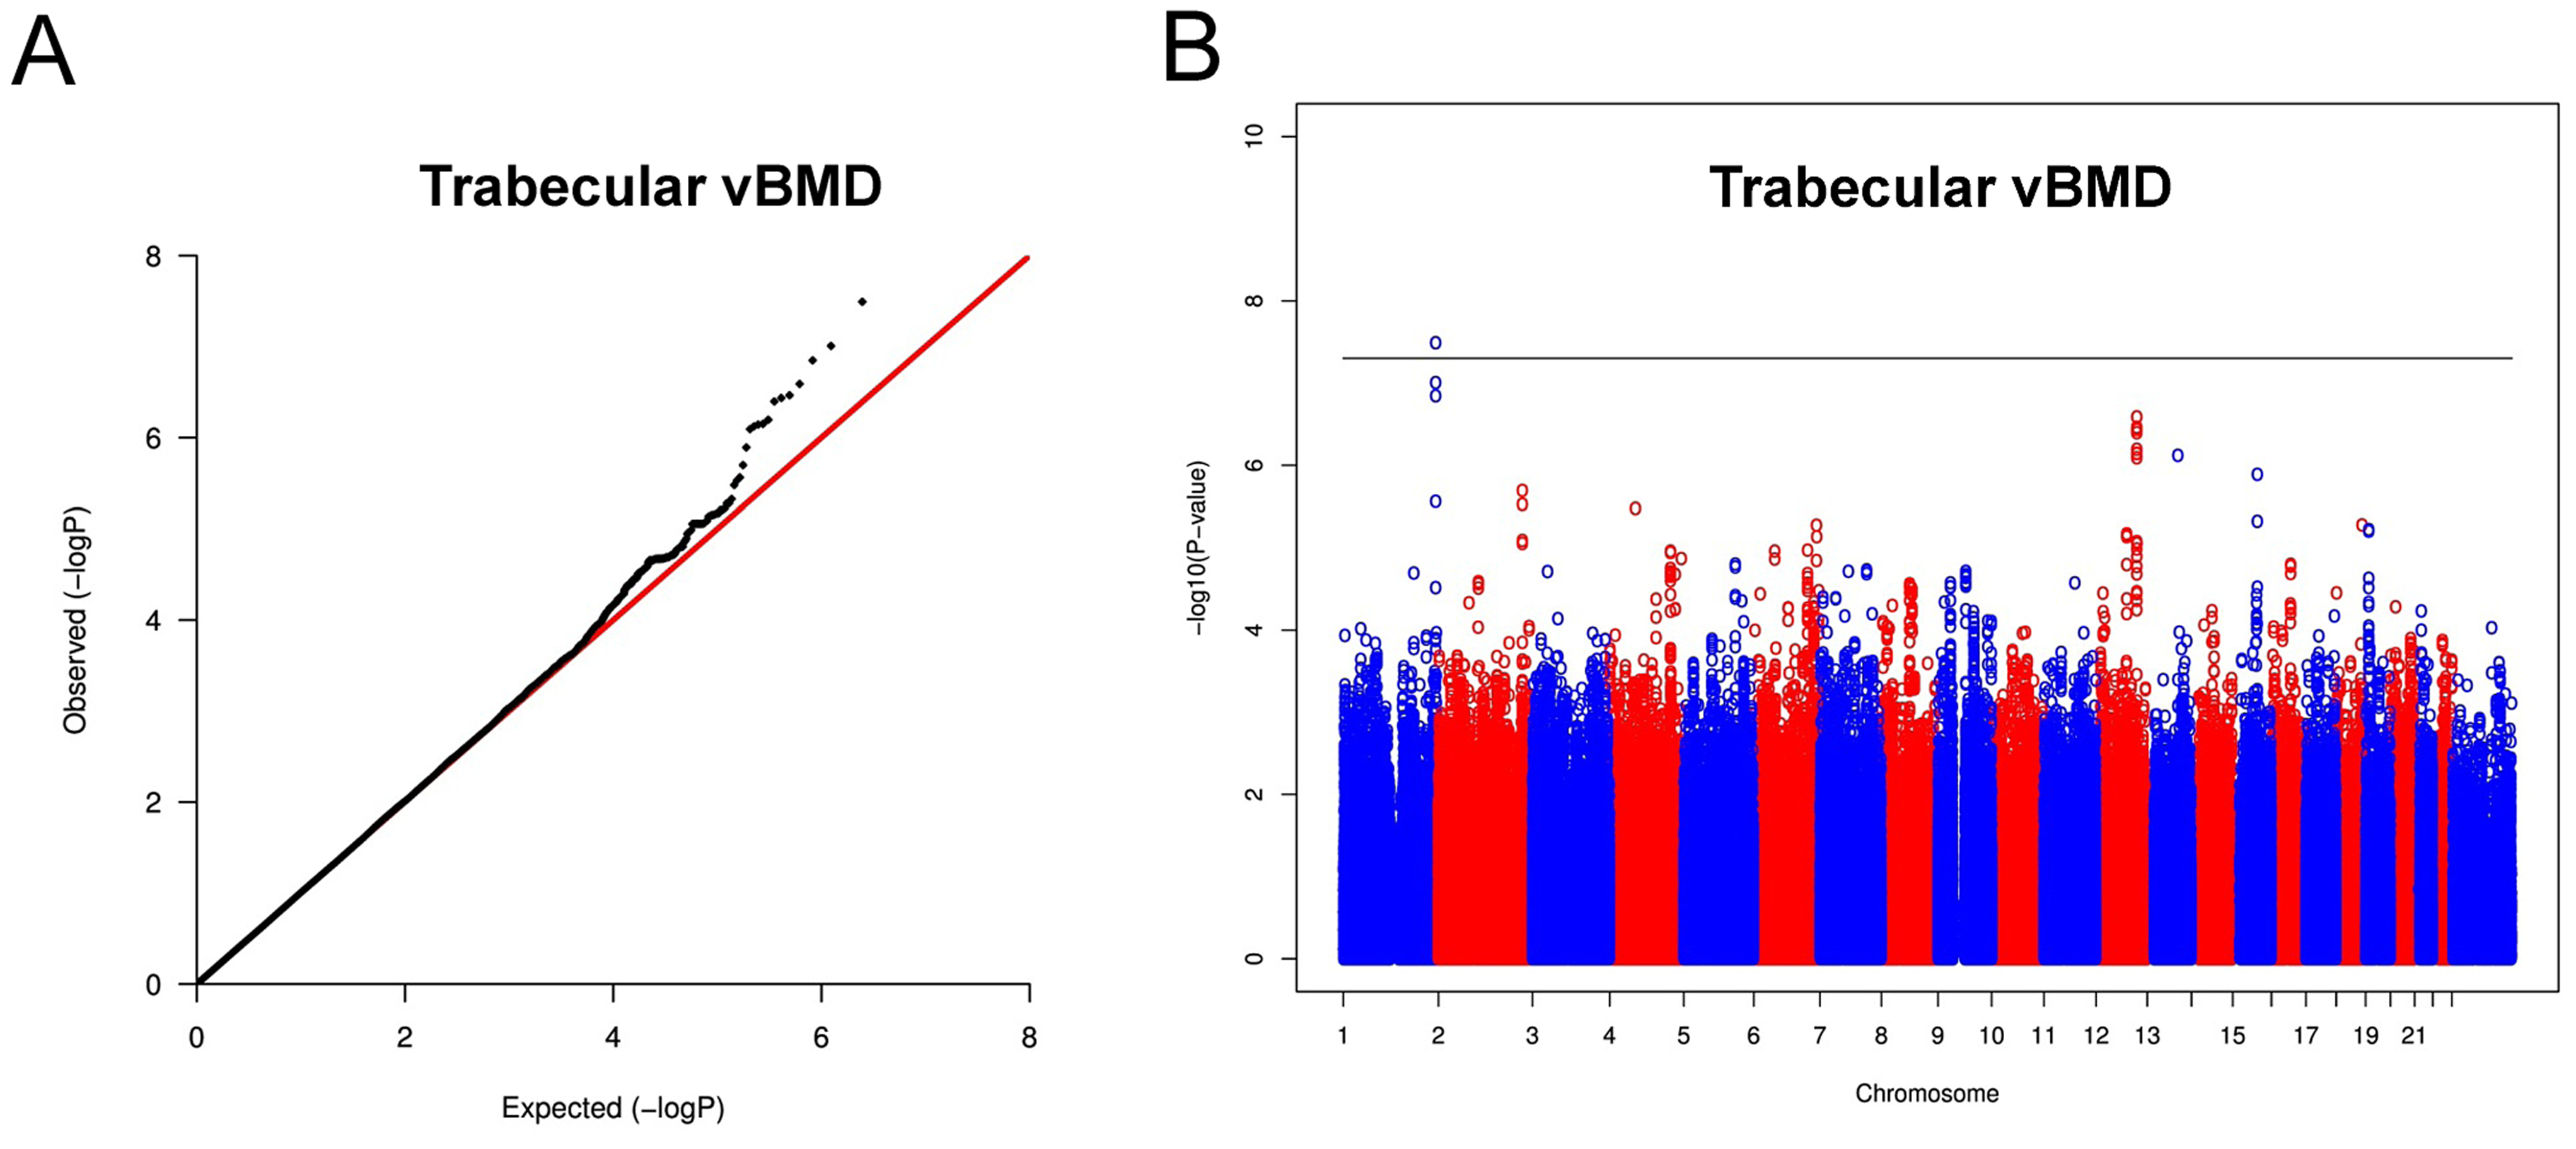 Genome-wide meta-analysis of trabecular vBMD.